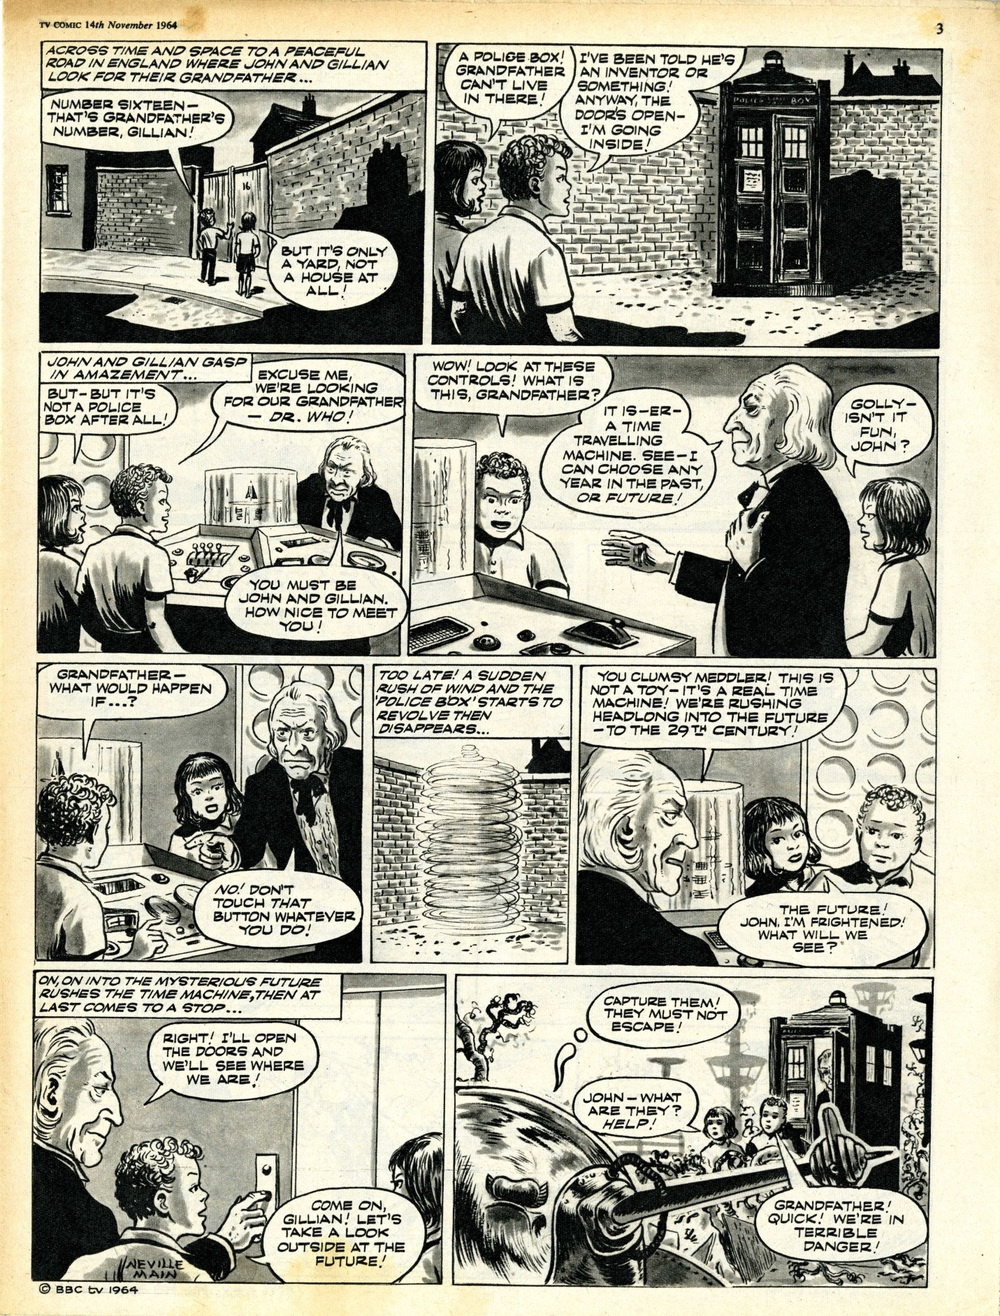 TV Comic No. 674, 14 November 1964, page 2 of The Klepton Parasites